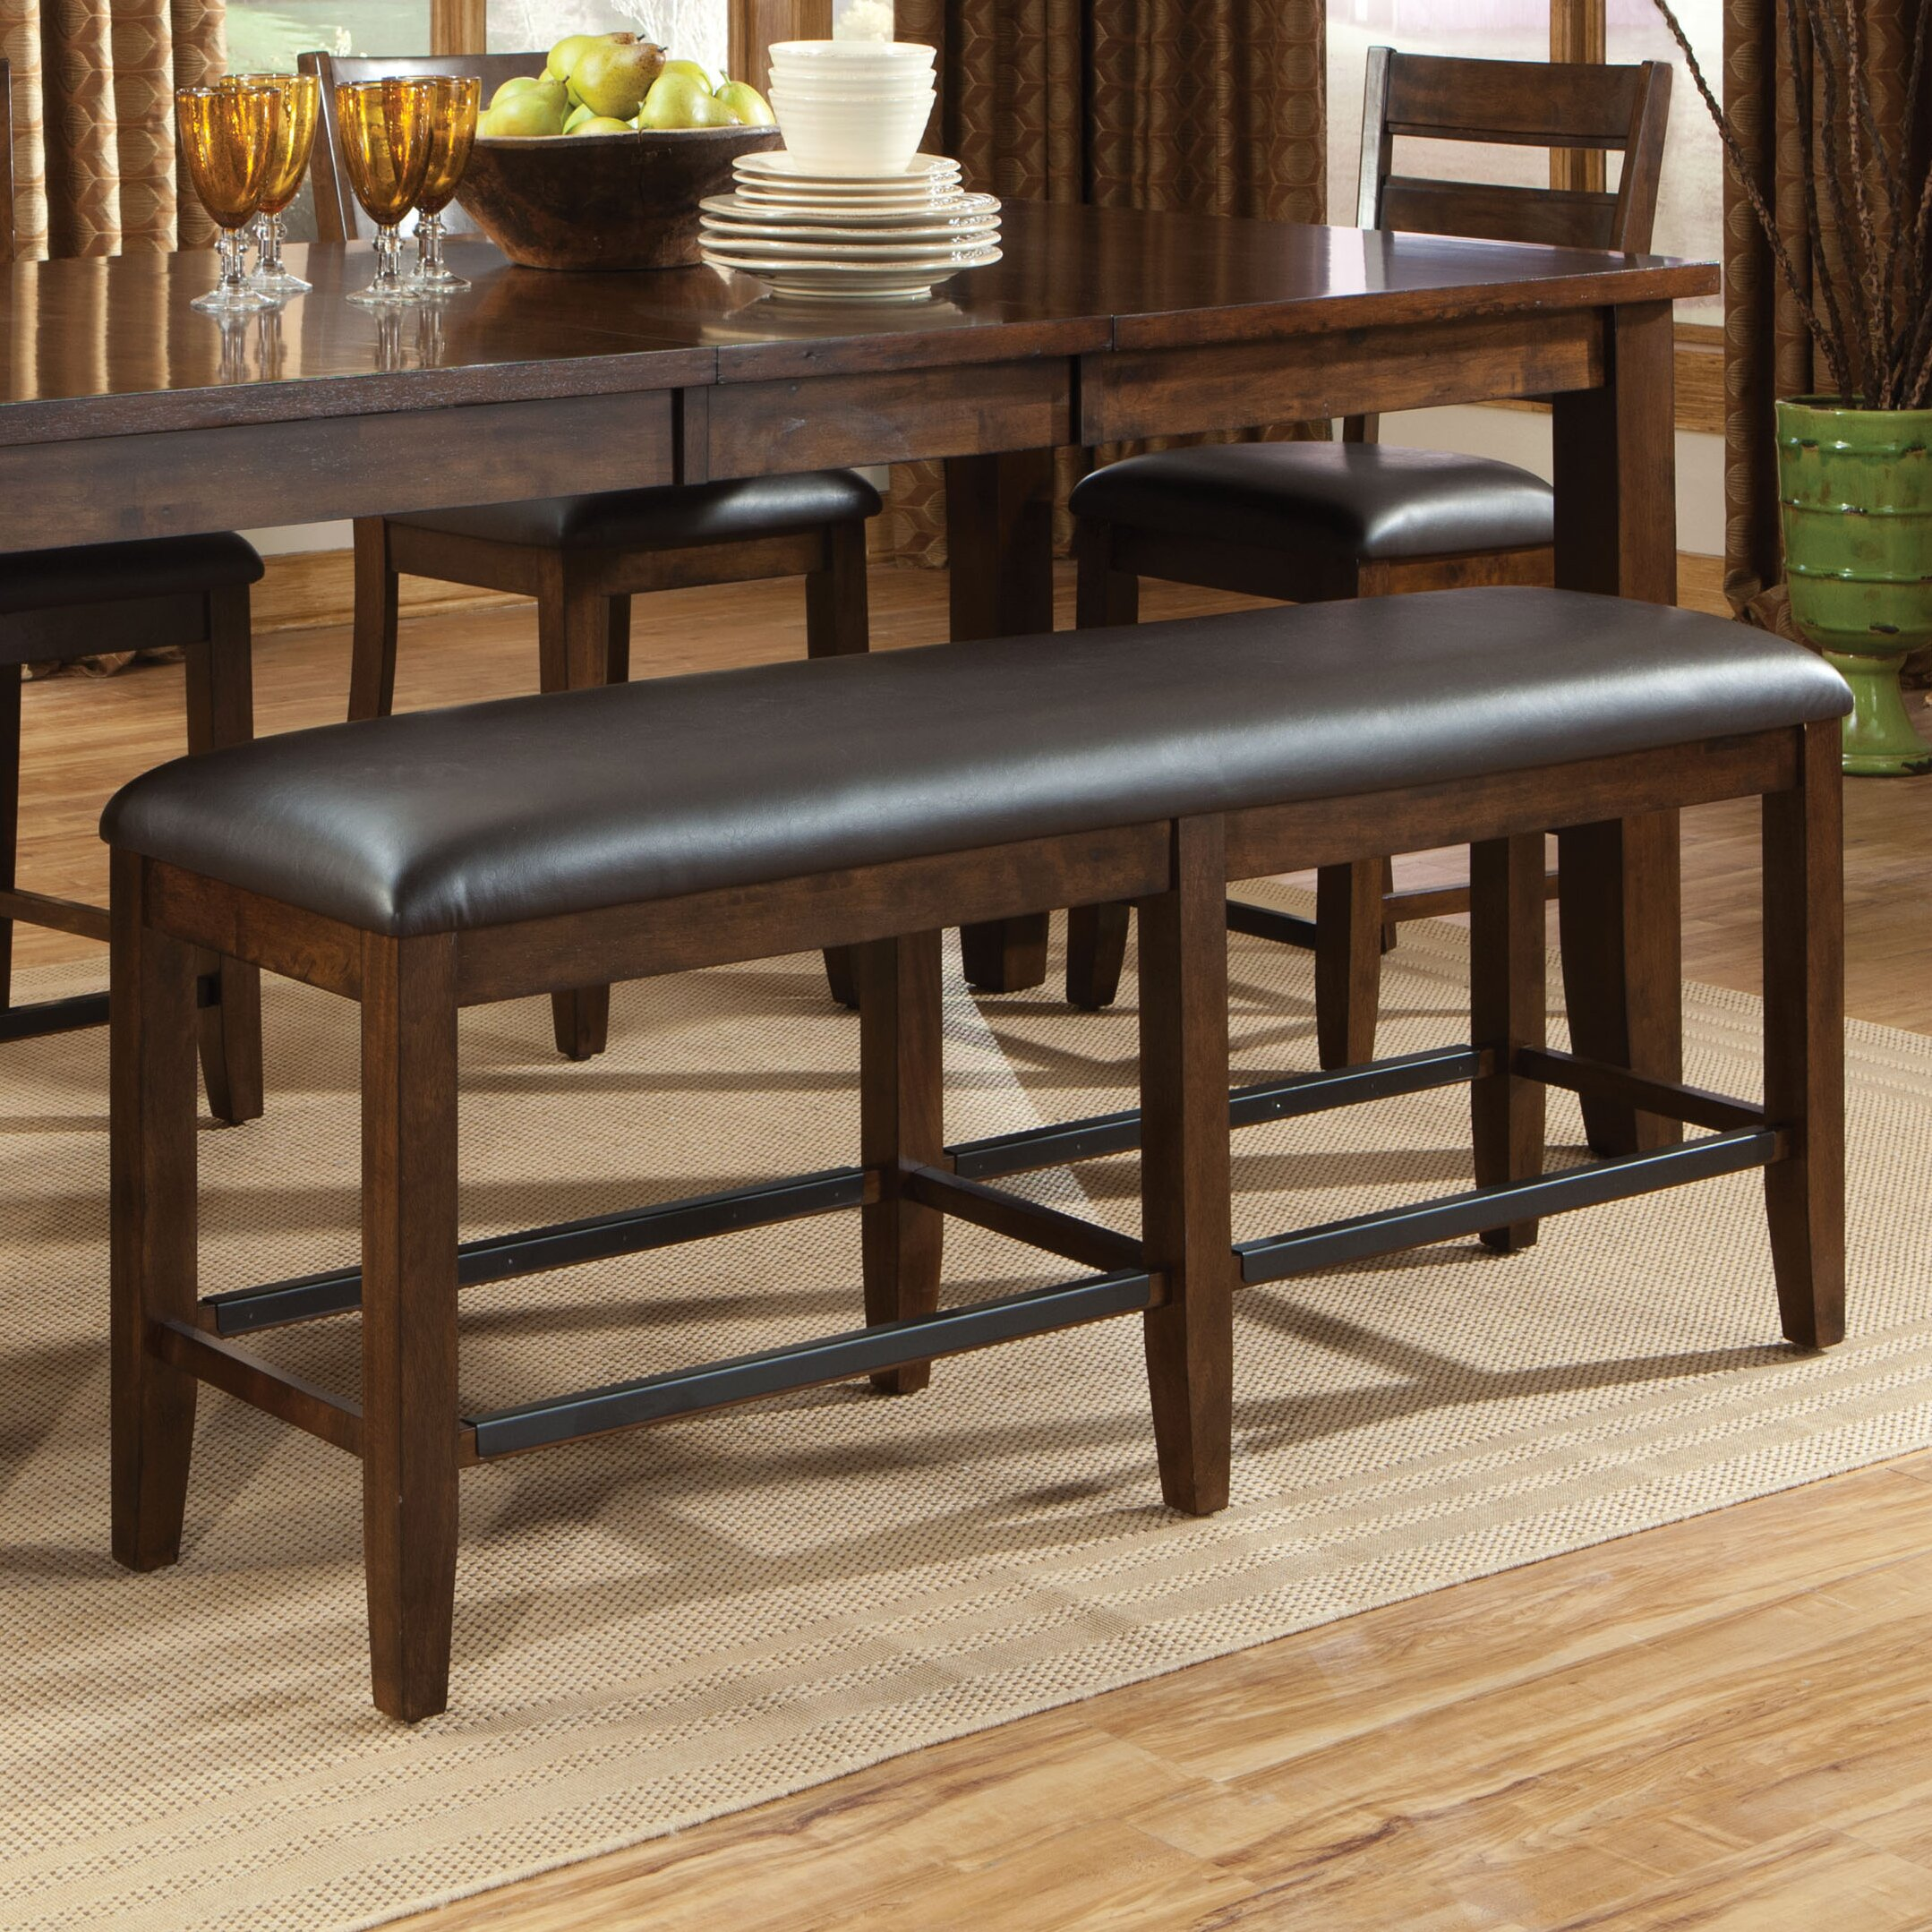 Kitchen Tables With A Bench: Standard Furniture Abaco Upholstered Kitchen Bench